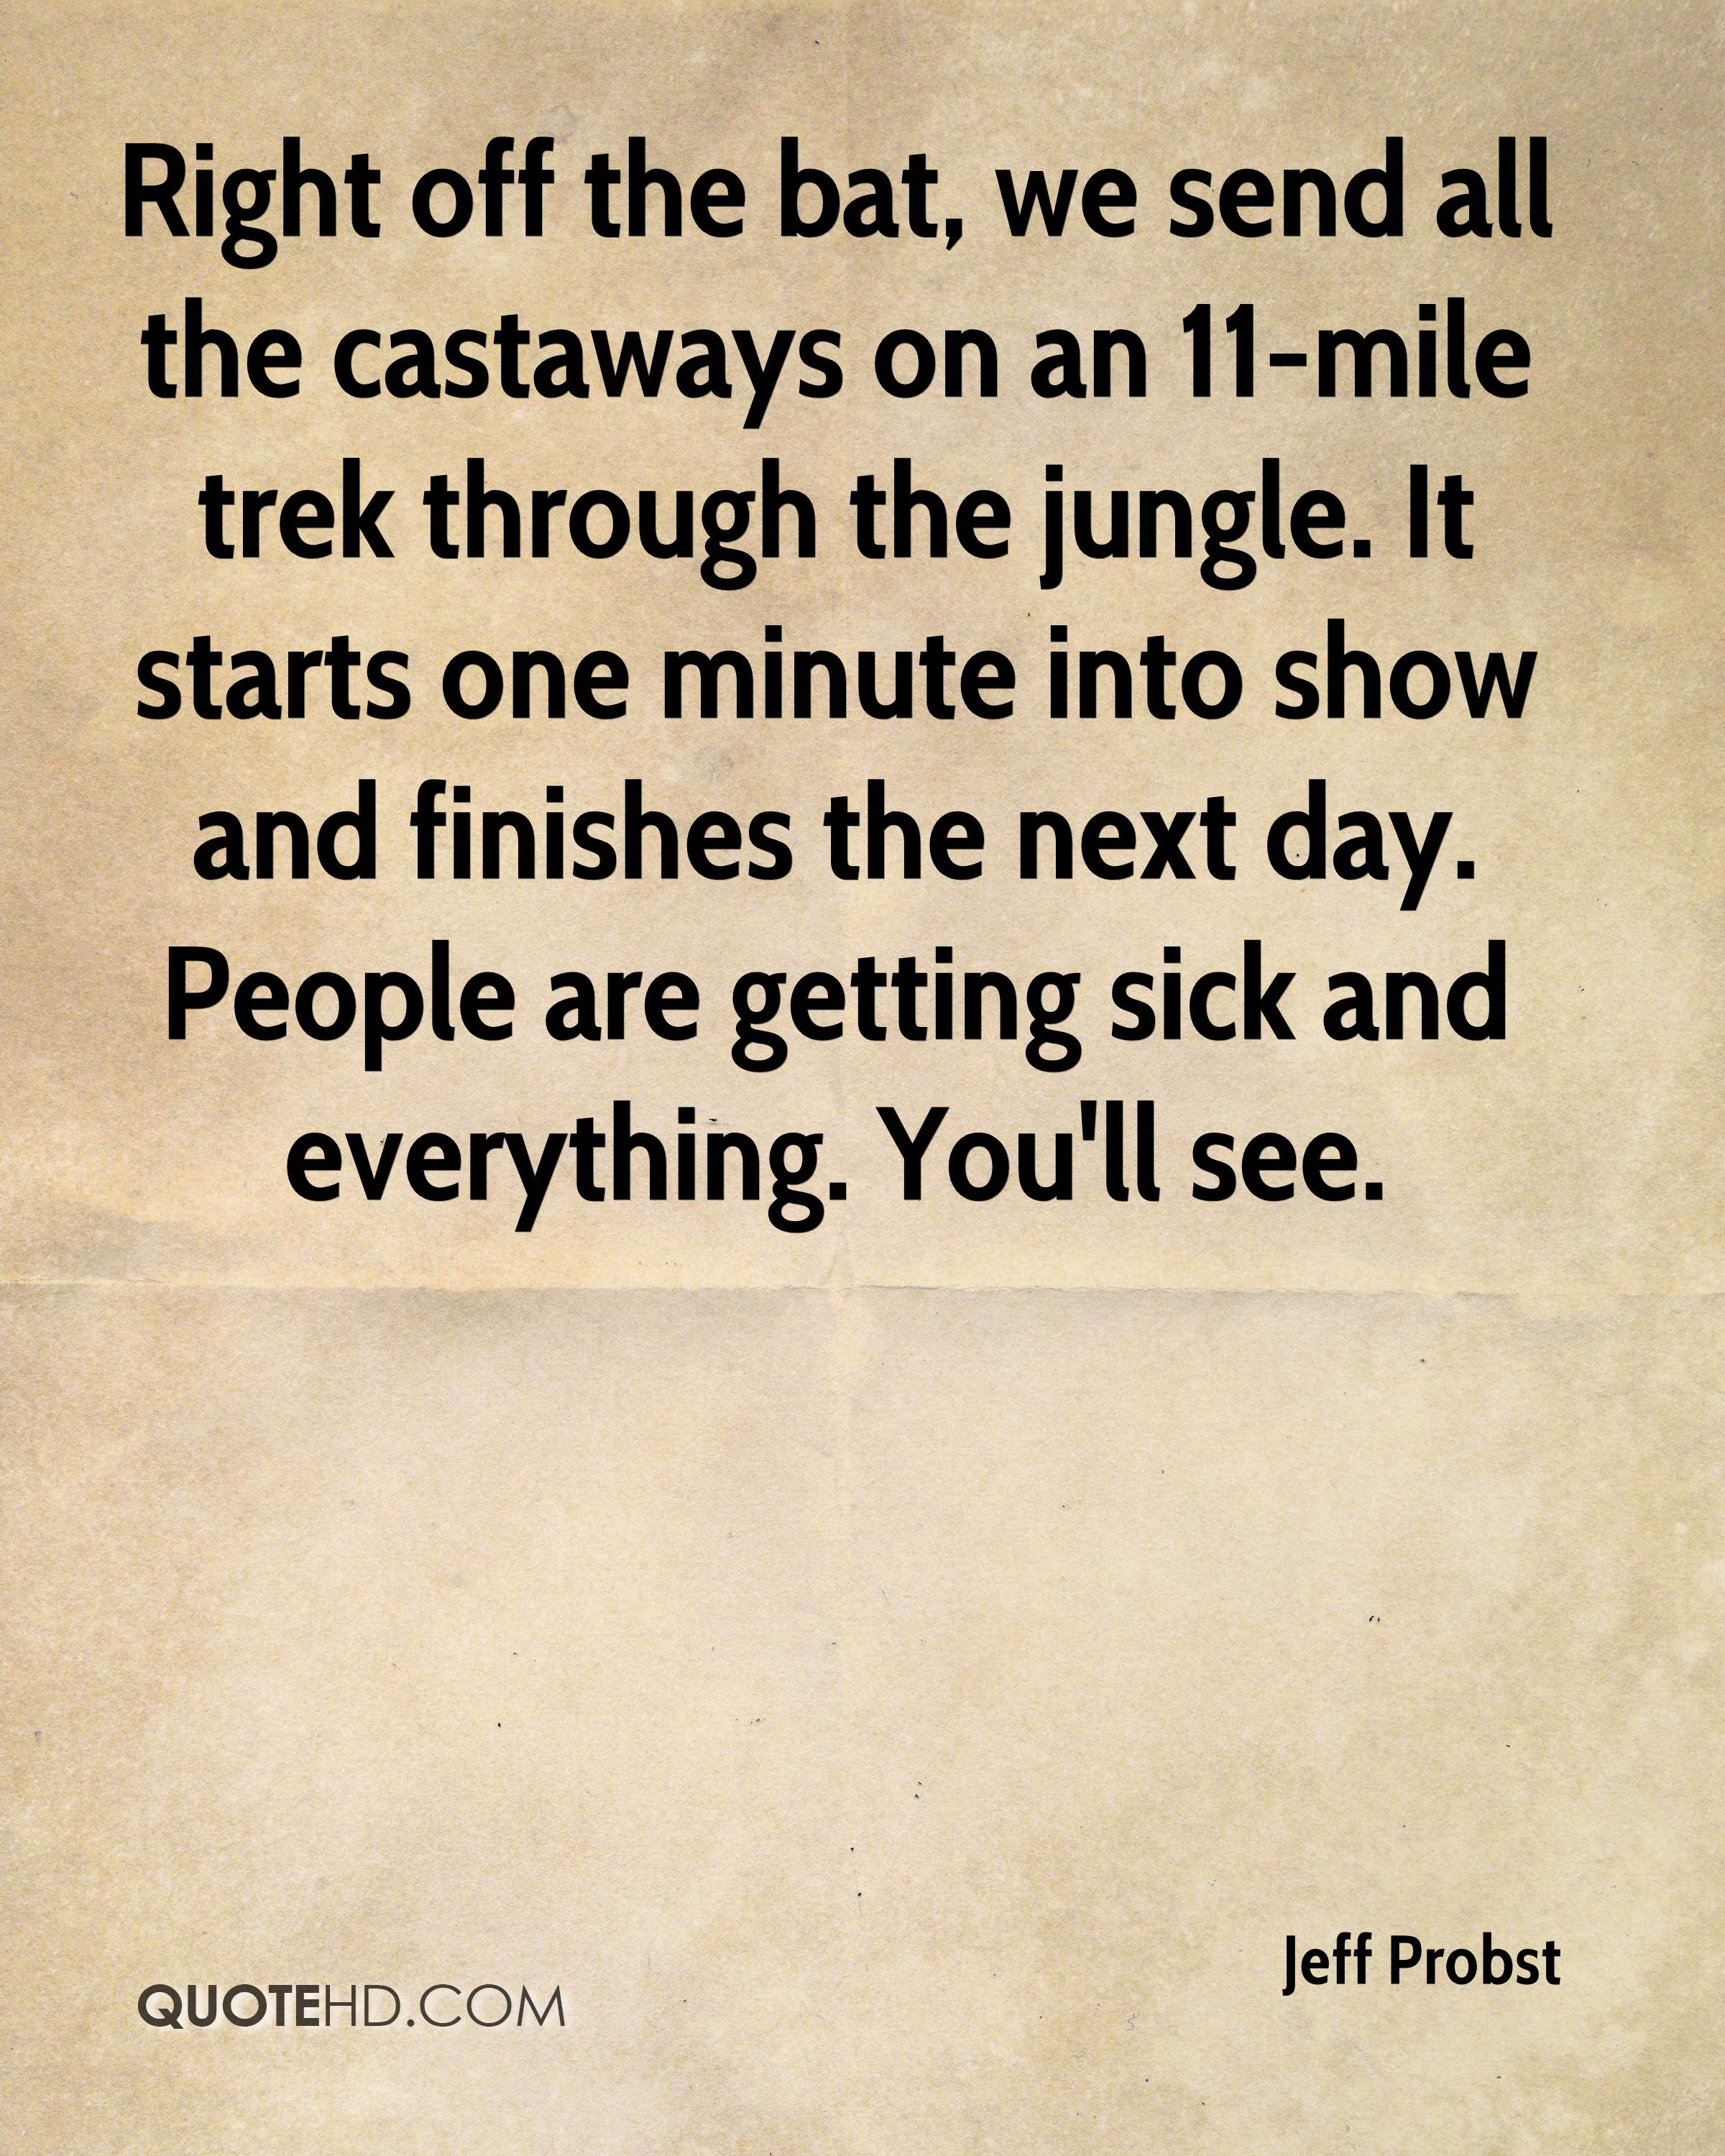 Right off the bat, we send all the castaways on an 11-mile trek through the jungle. It starts one minute into show and finishes the next day. People are getting sick and everything. You'll see.